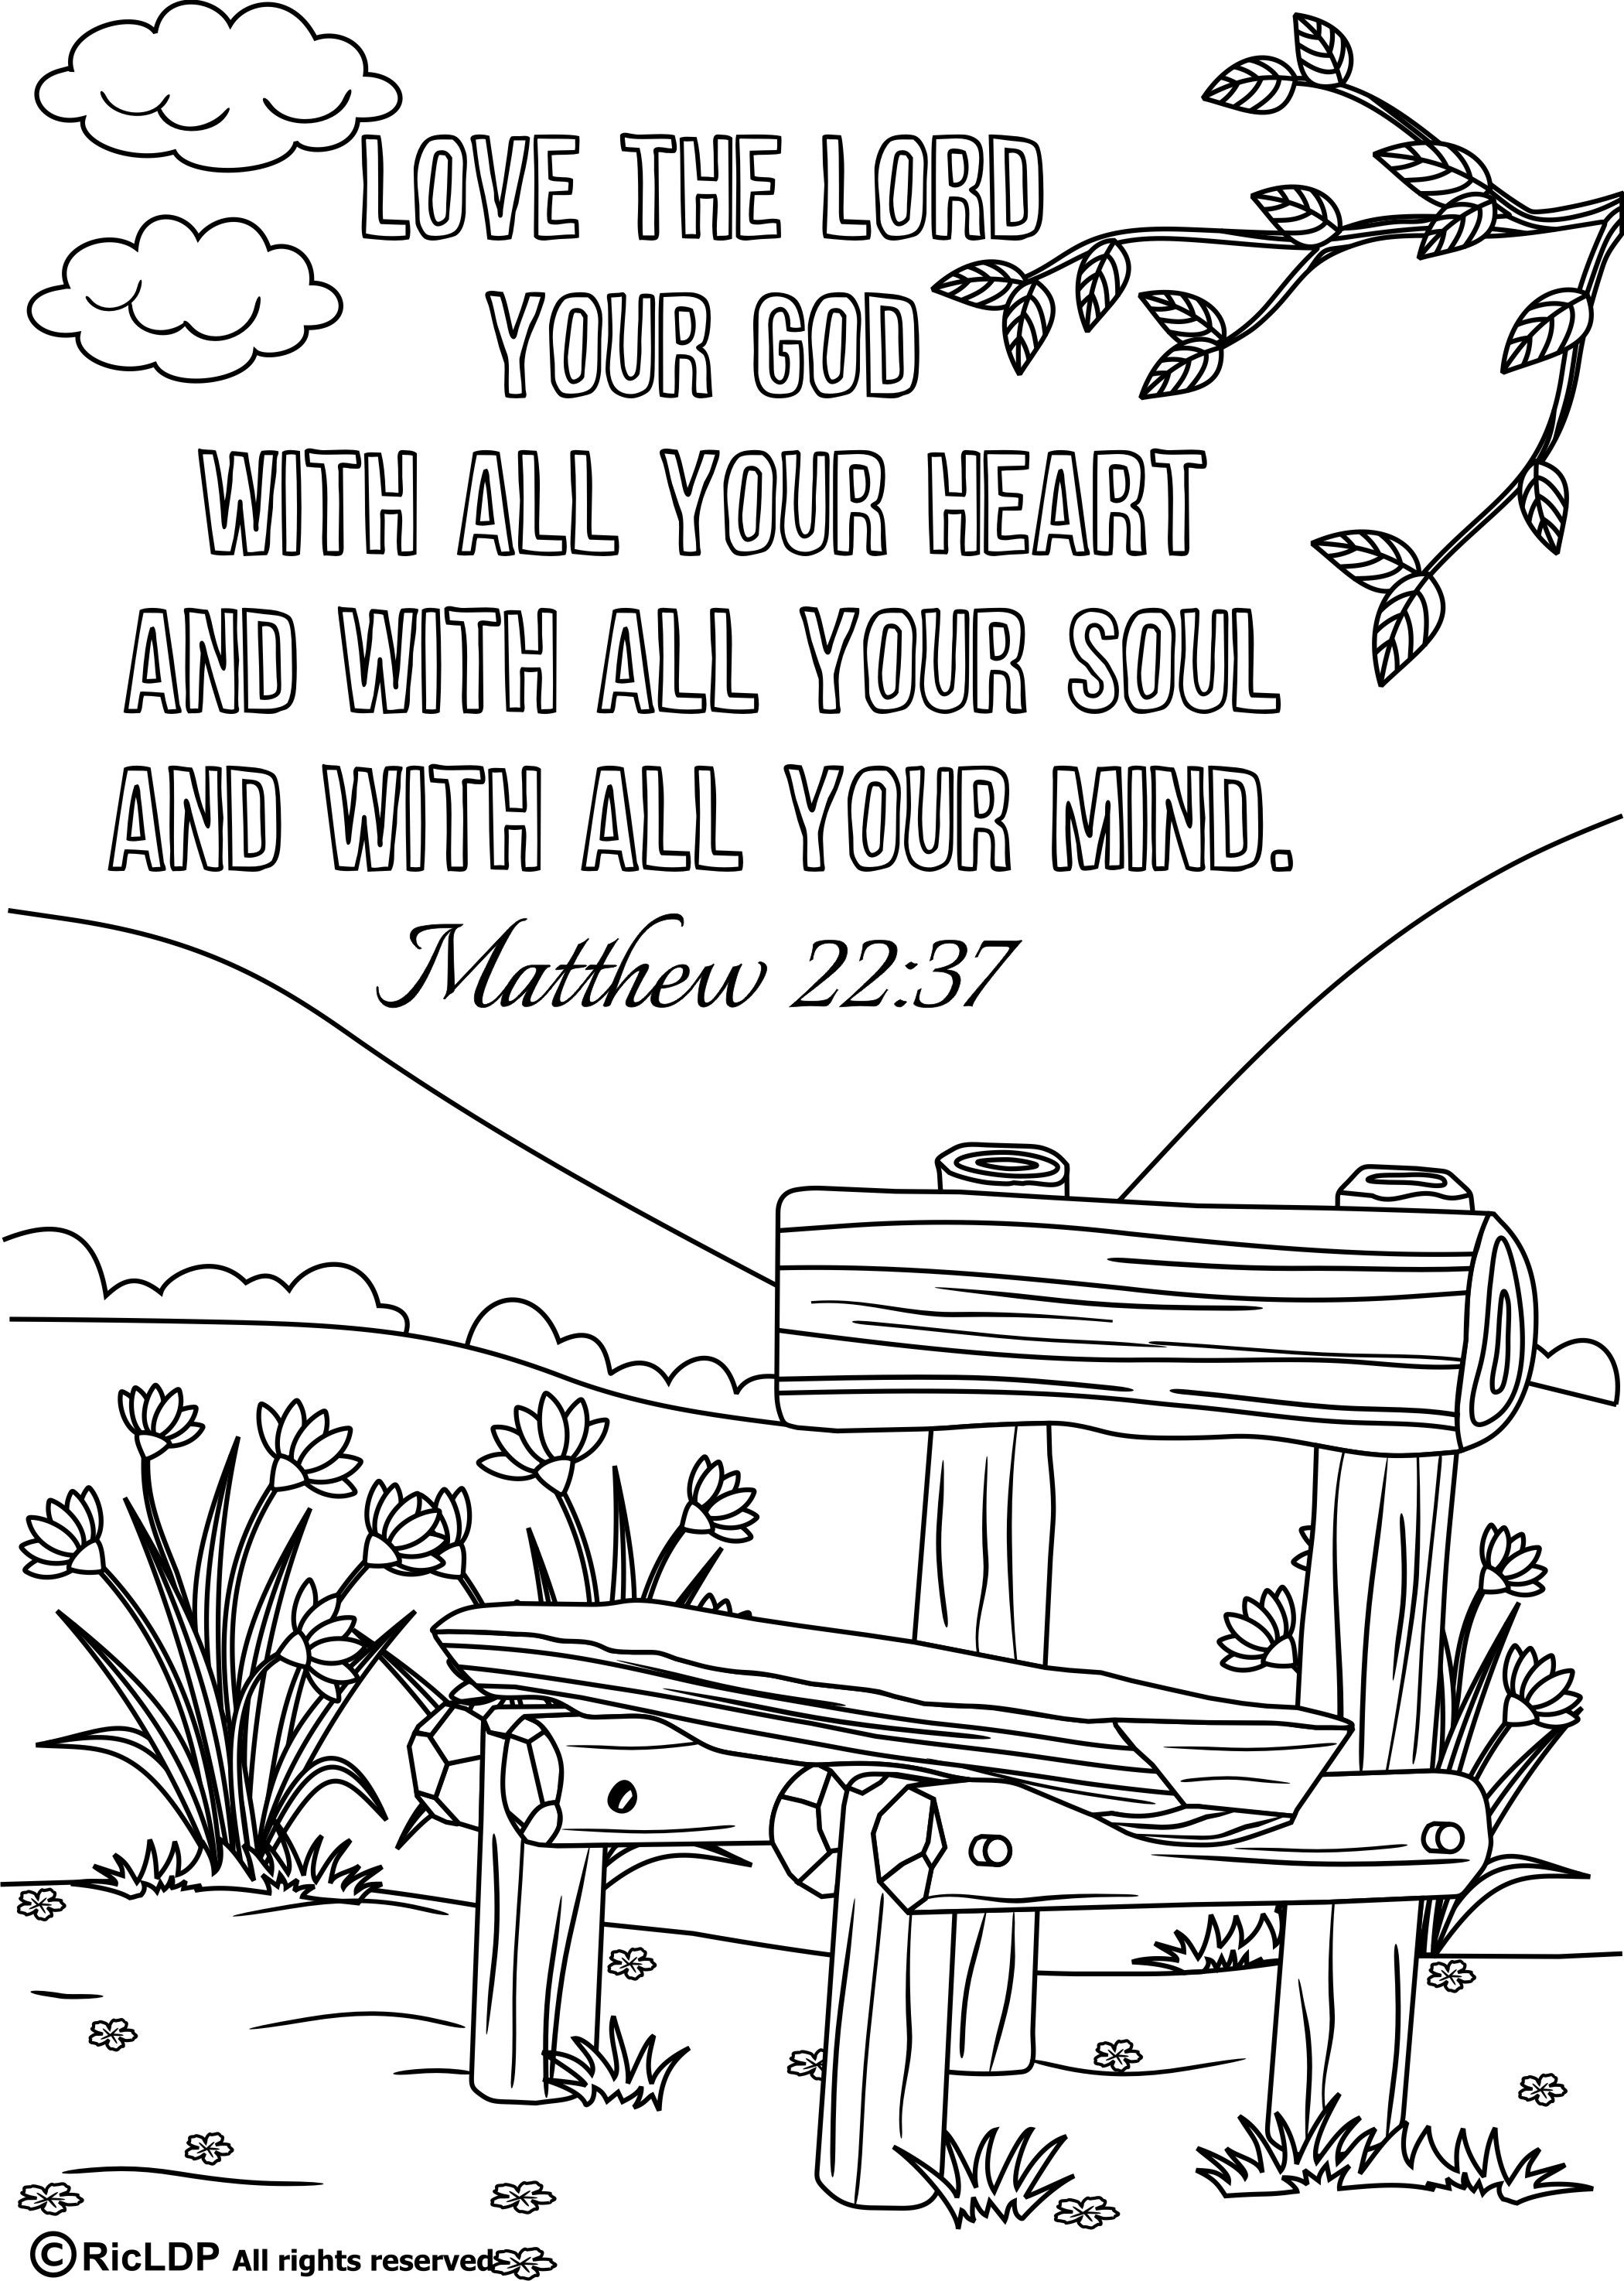 free bible coloring pages pdf 15 Bible Verses Coloring Pages | Christian Coloring Pages NT  free bible coloring pages pdf